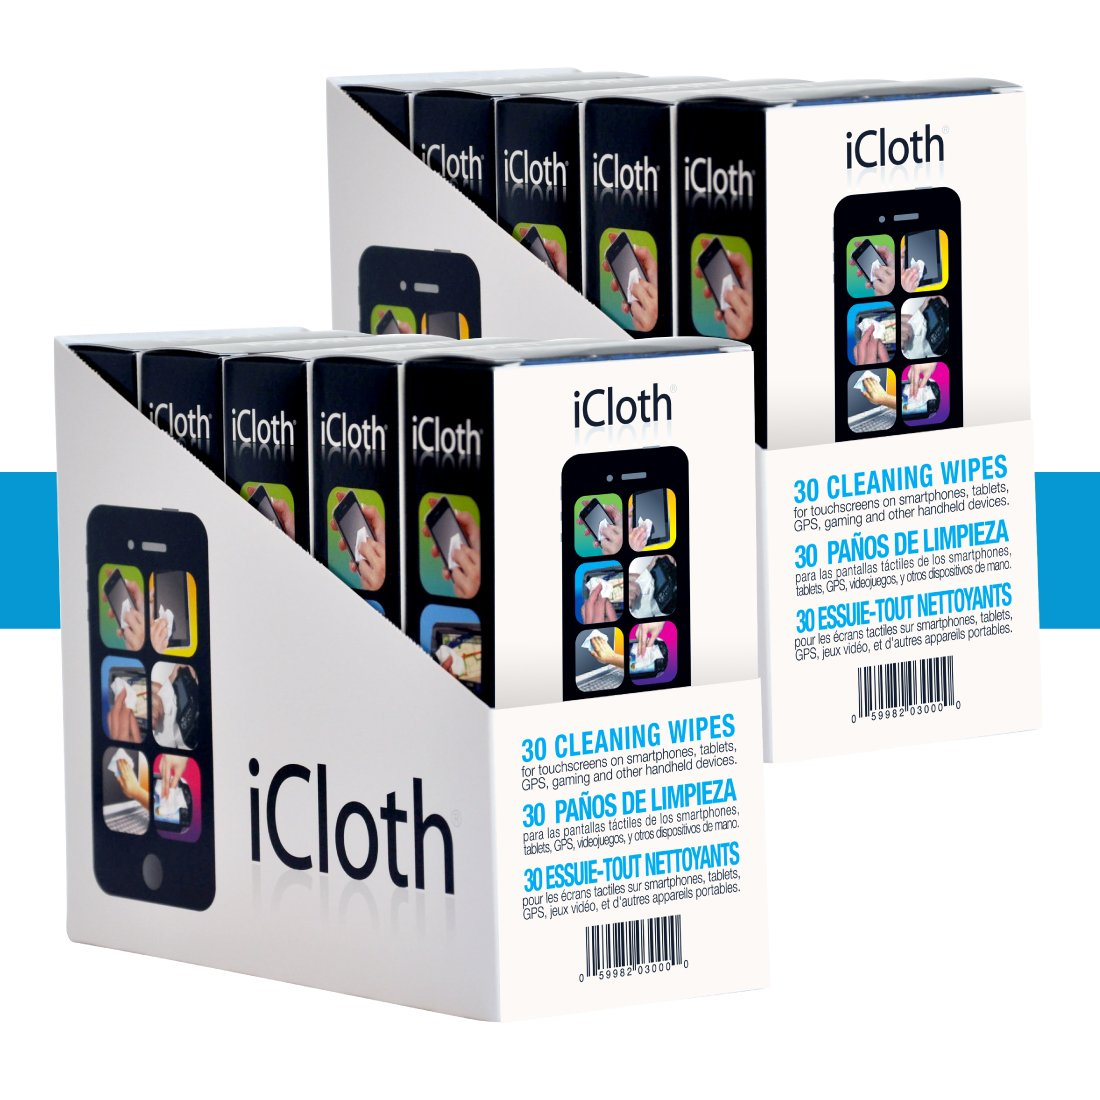 iCloth Small-Screen and Lens Cleaner | 10 x 30 wipe boxes pre-moistened and individually sealed - approved for optical clarity | iC30x10